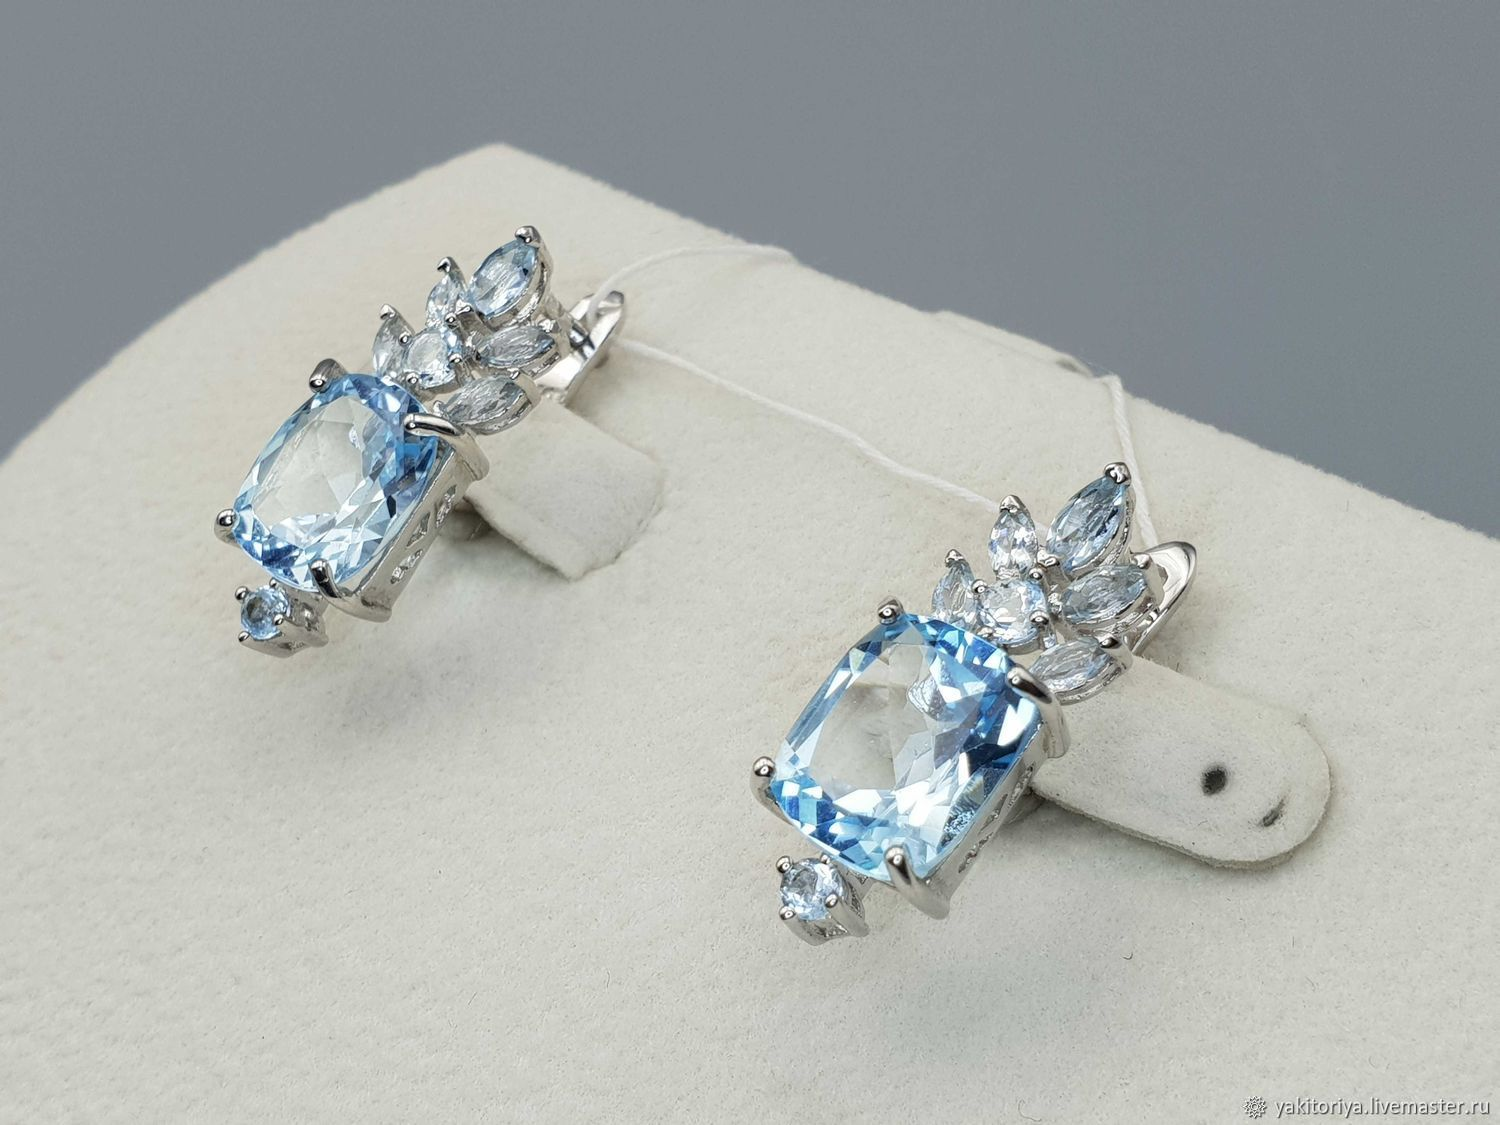 silver earrings with Topaz stones, Earrings, Moscow,  Фото №1